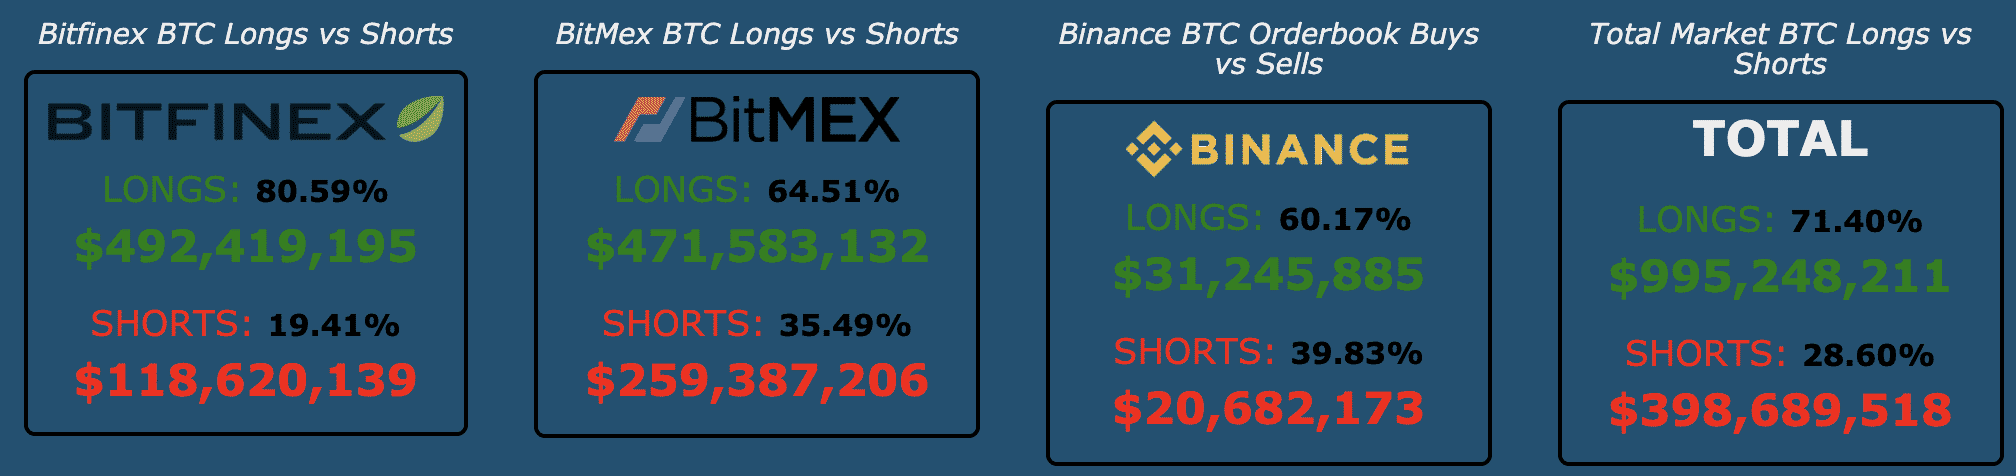 Bitcoin longs and shorts, Feb 2020